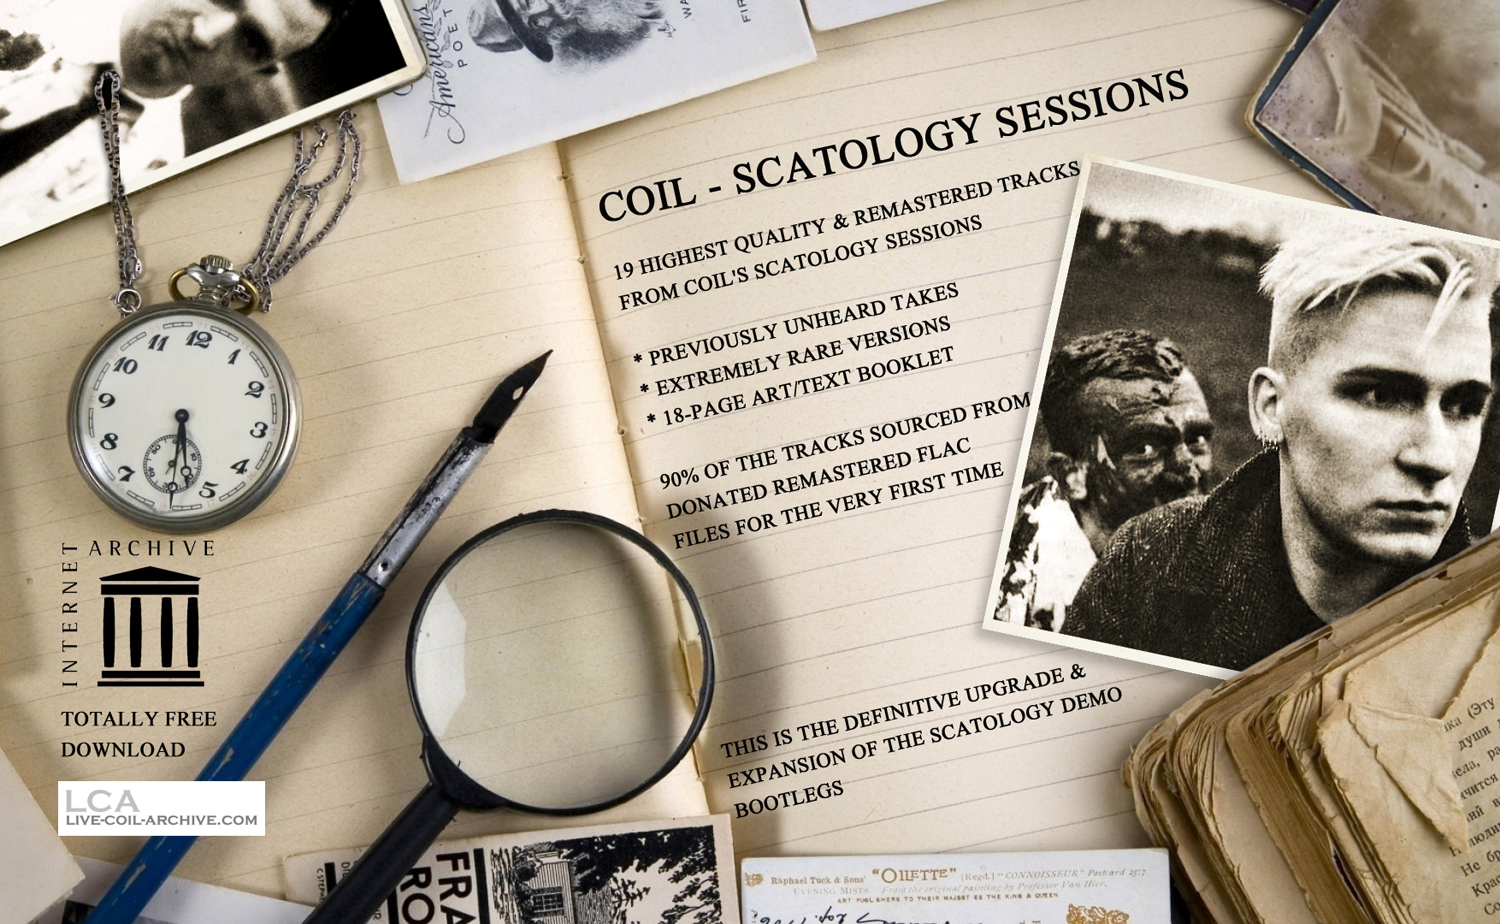 Site Updates and News – Live COIL Archive